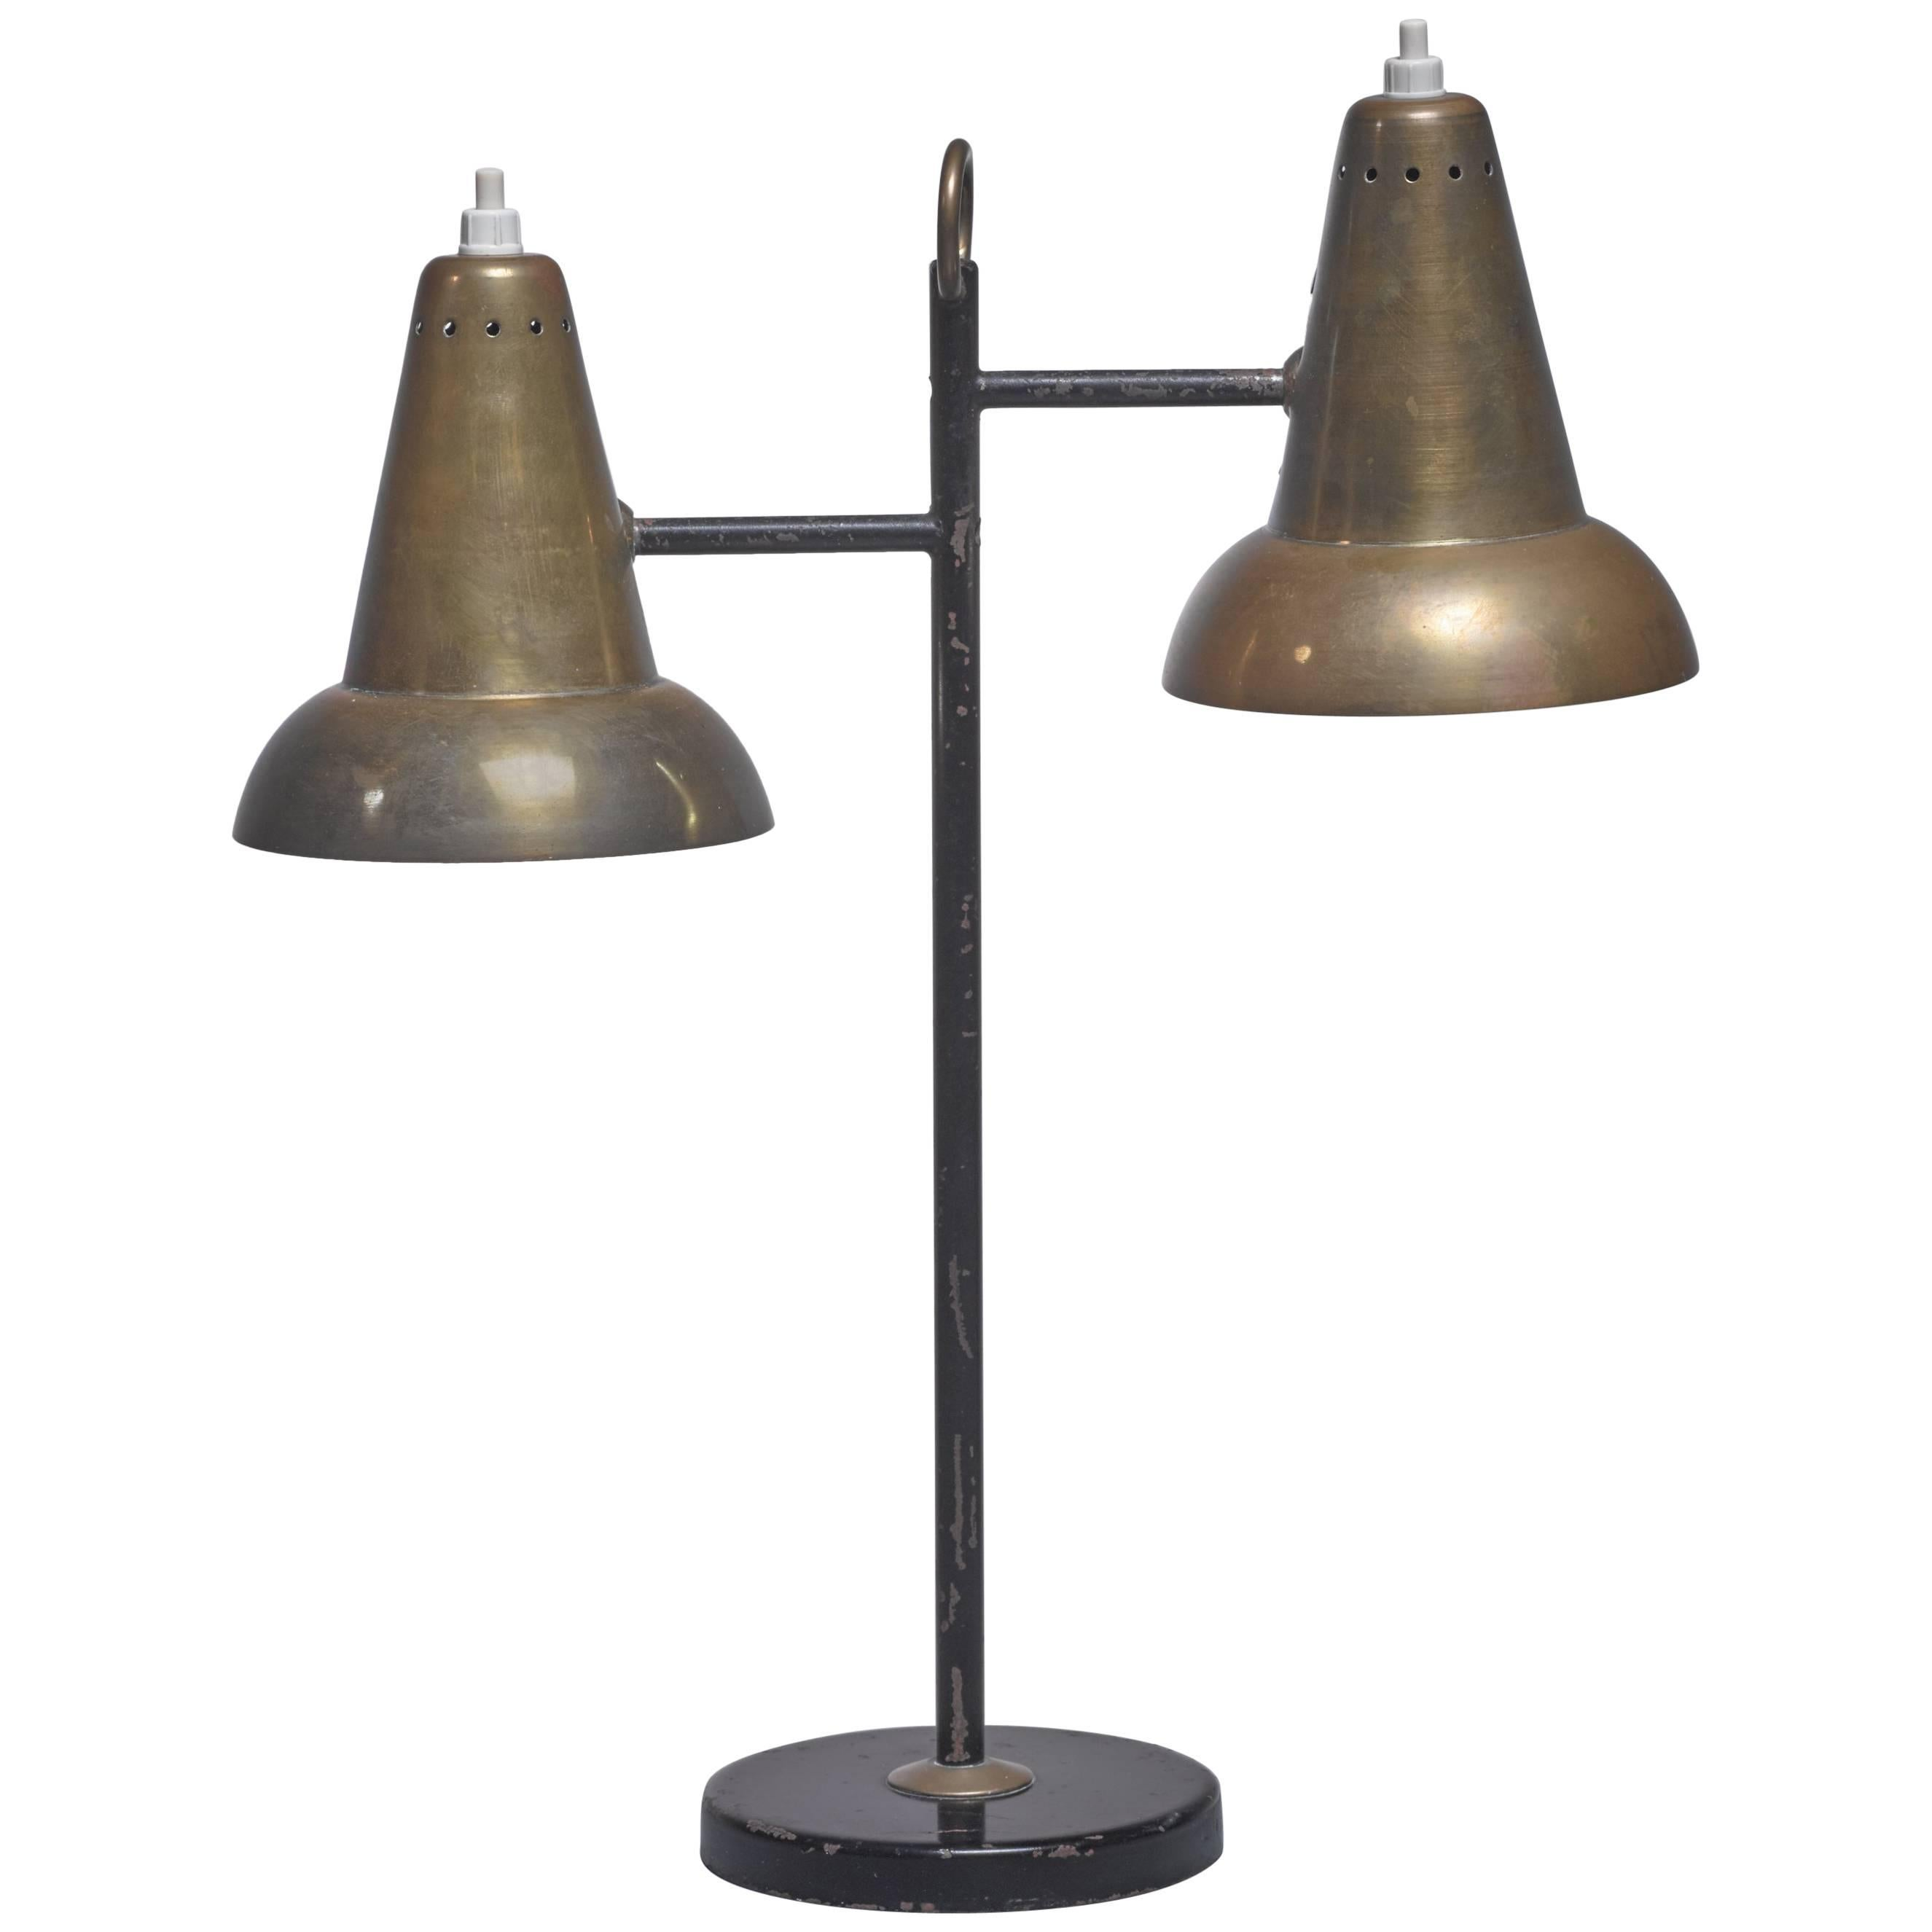 Metal And Brass Table Lamps With Two Hoods, France, 1950s